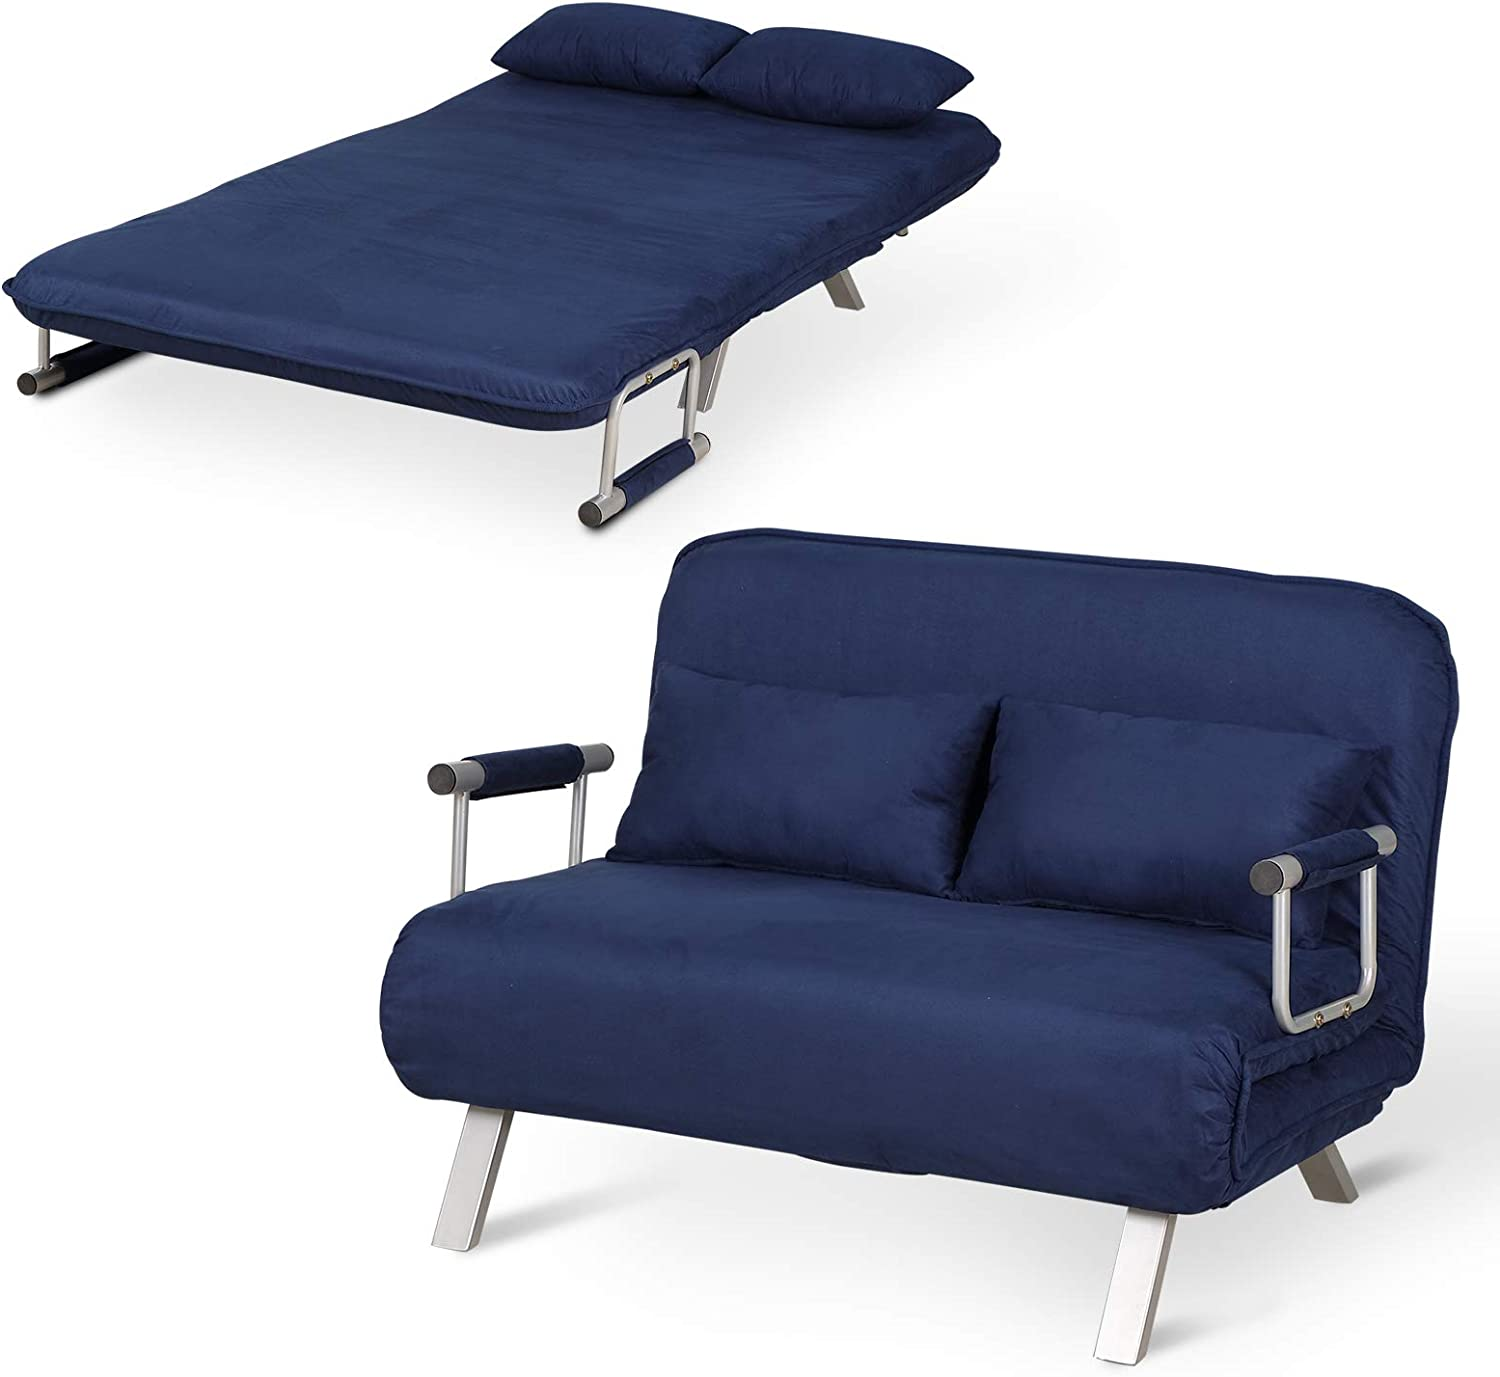 Amazon.com: HOMCOM Small Sofa Couch Futon With Fold Up Bed And Adjustable Backrest, Featuring Modern Design With Chic Suede, Blue: Furniture & Decor